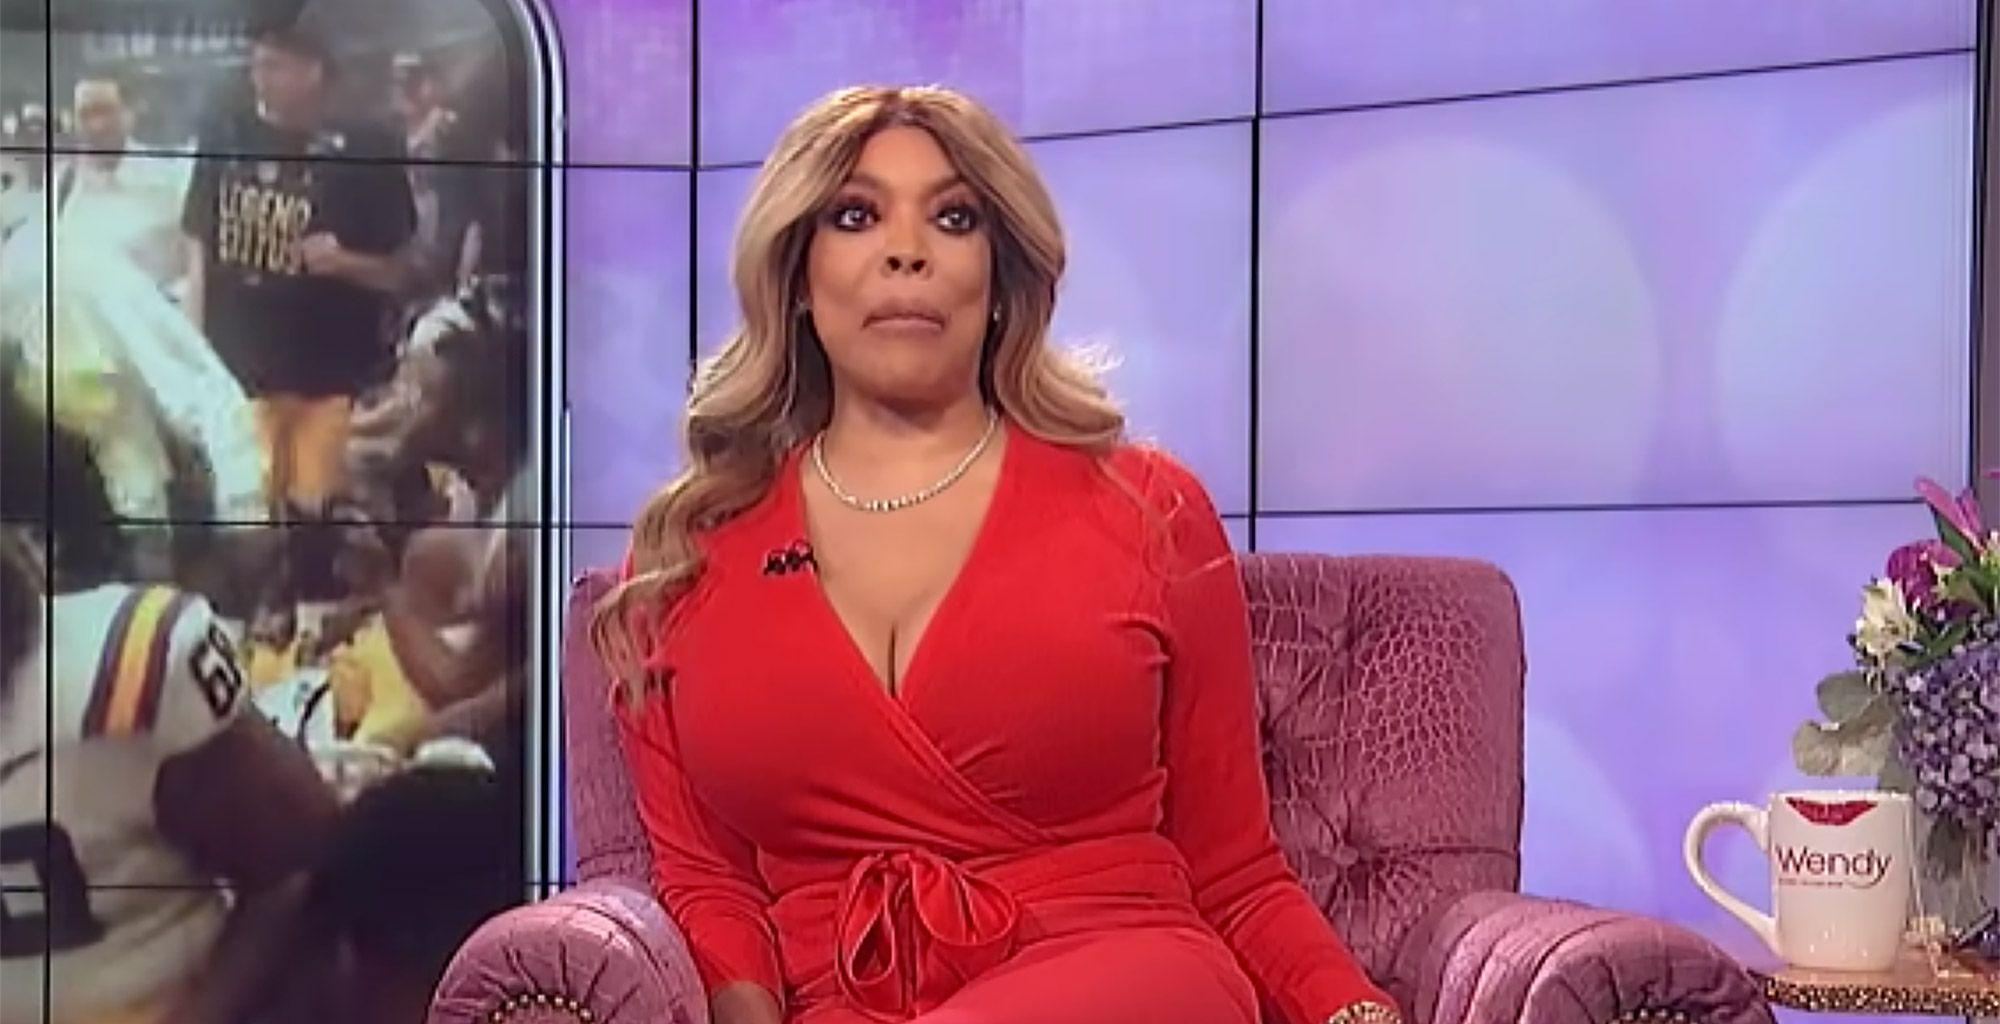 Wendy Williams Reacts To Ex-BF Statement About Their Former Relationship